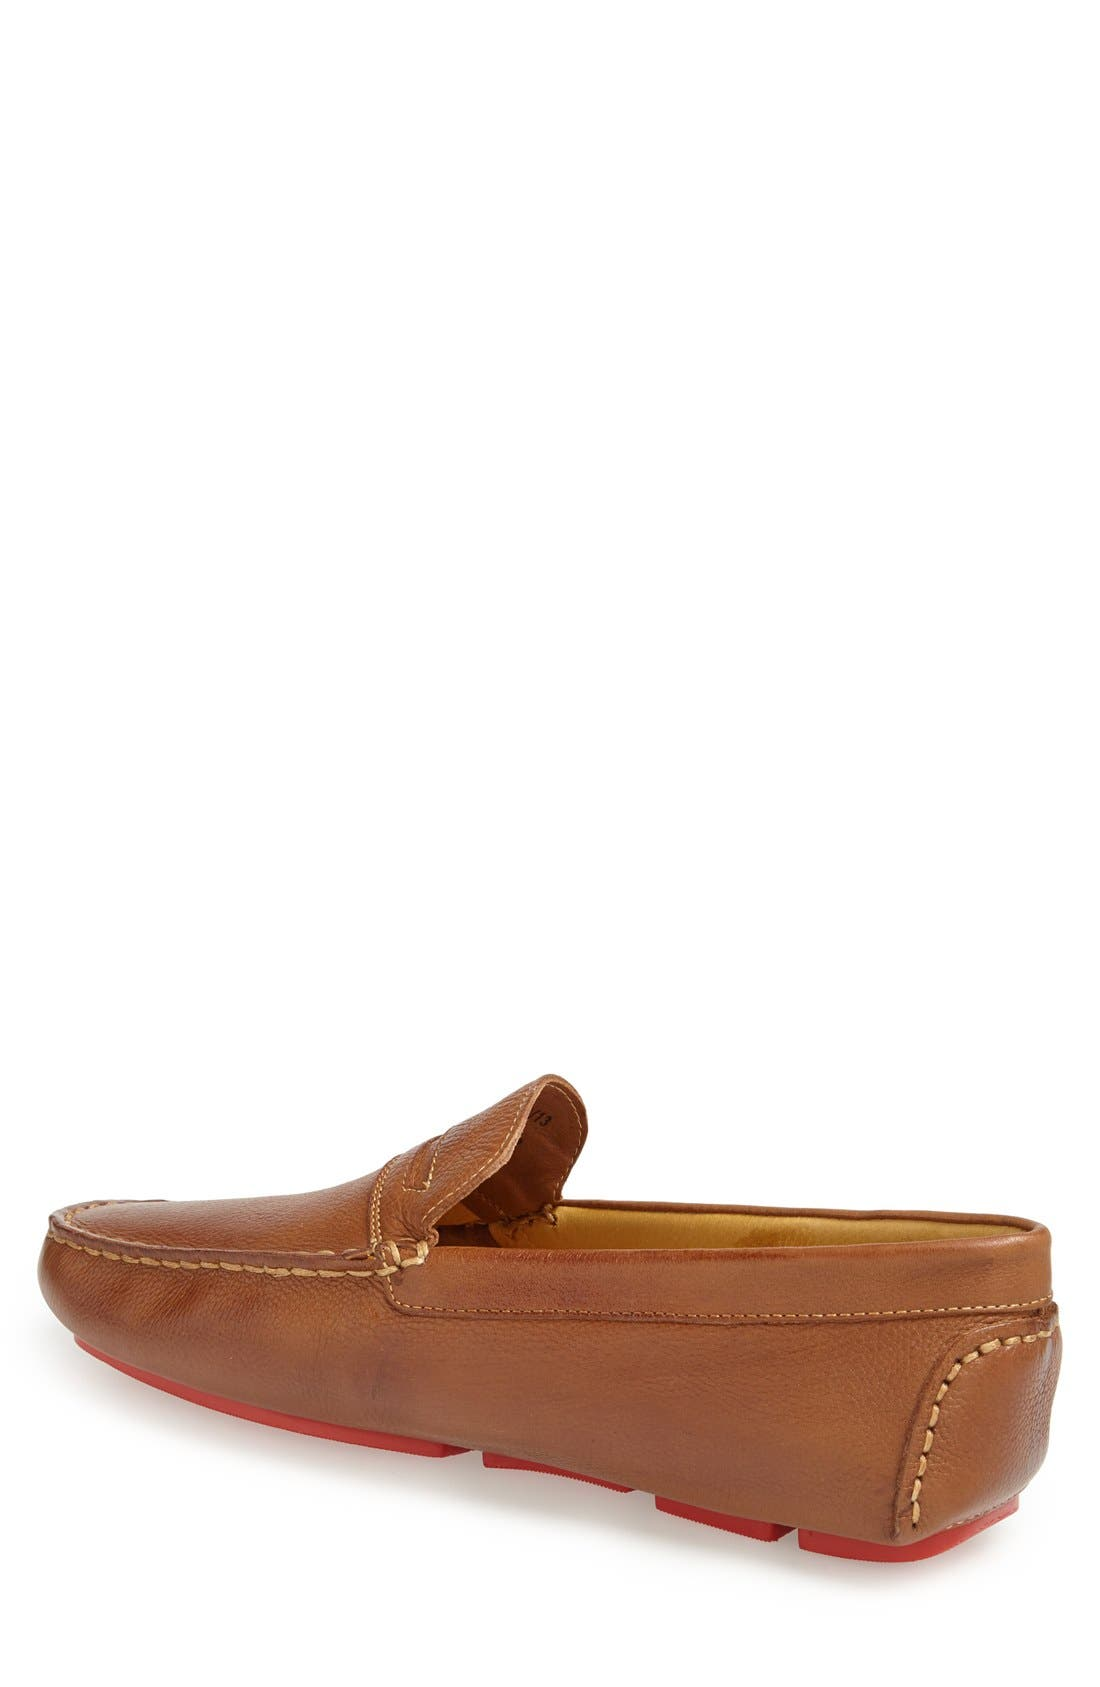 'Santee' Driving Shoe,                             Alternate thumbnail 3, color,                             COGNAC